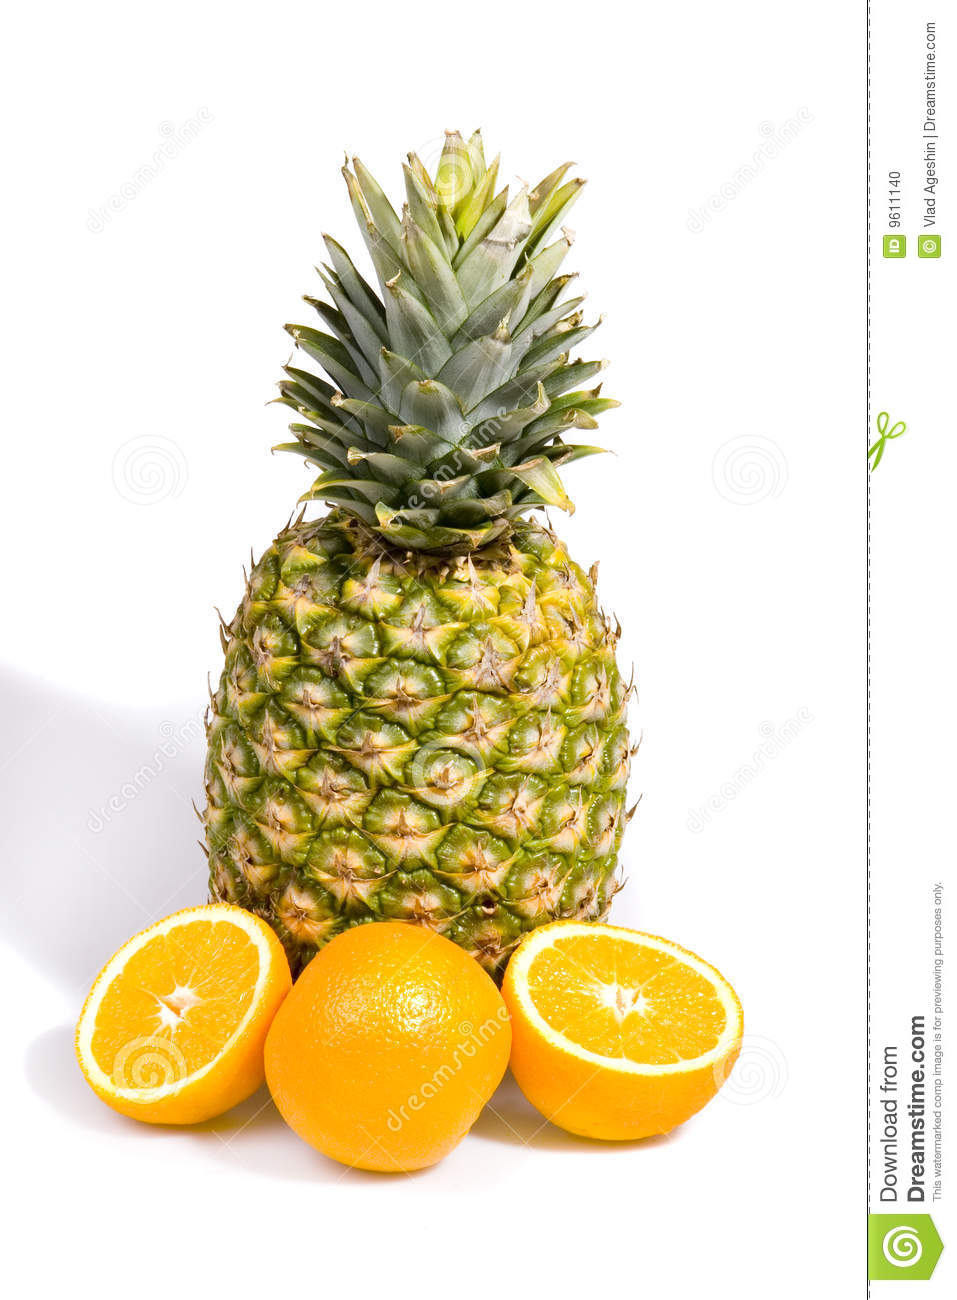 pineapple and orange stock photo image of fruit  tropical clipart oranges and lemons oranges clipart free